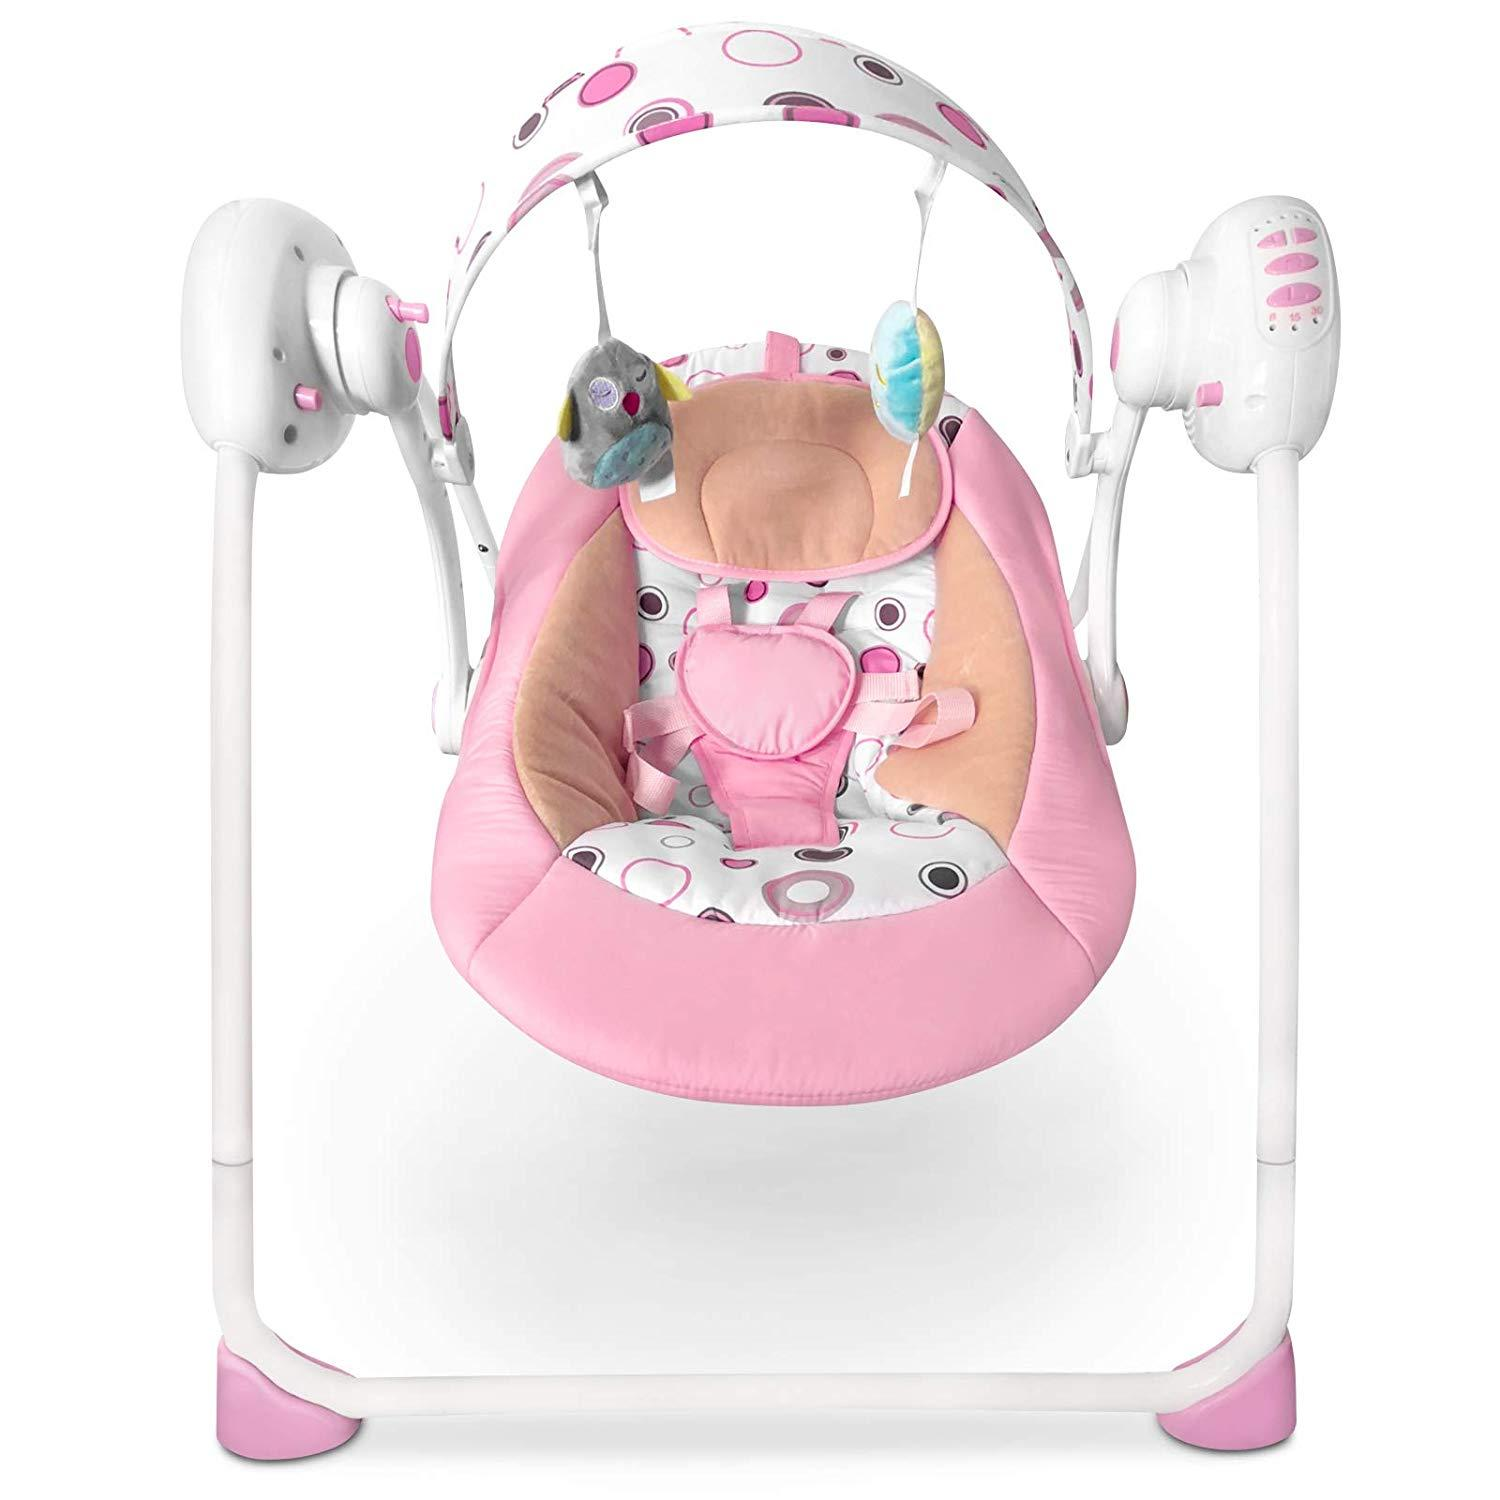 Child Baby Rocker Baby Carrier Swing Seat With 3 Point Safety